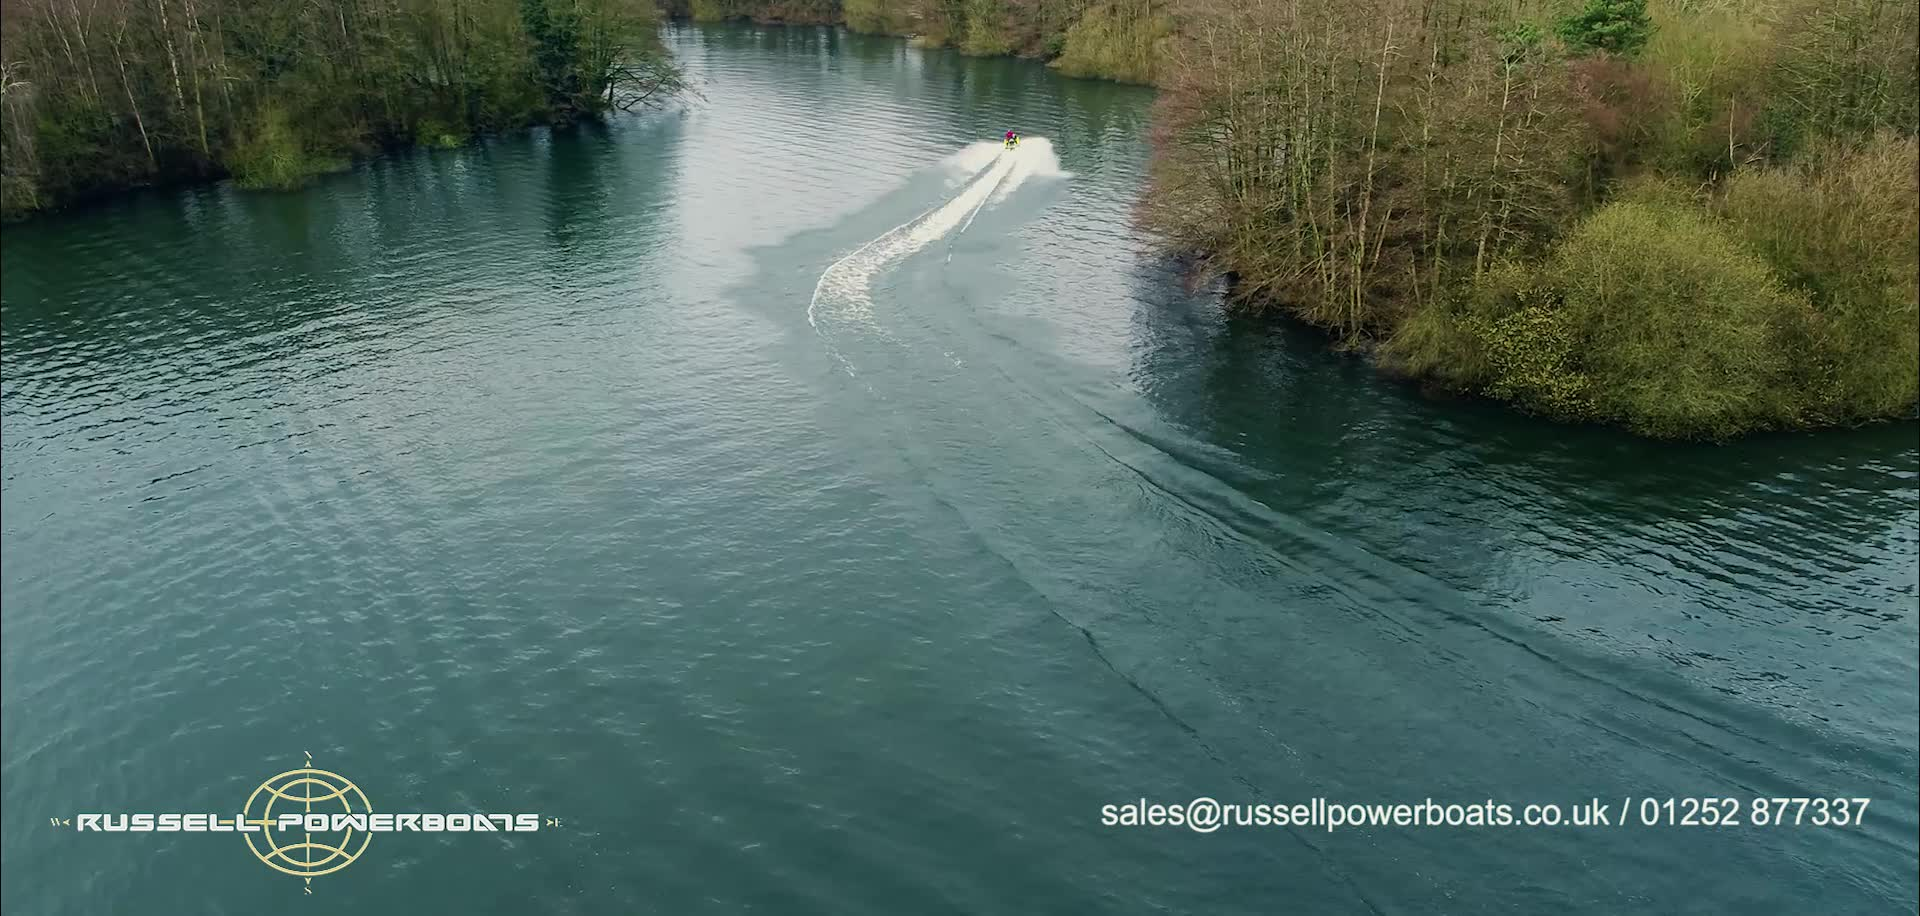 A Flyover of Russell Powerboats.